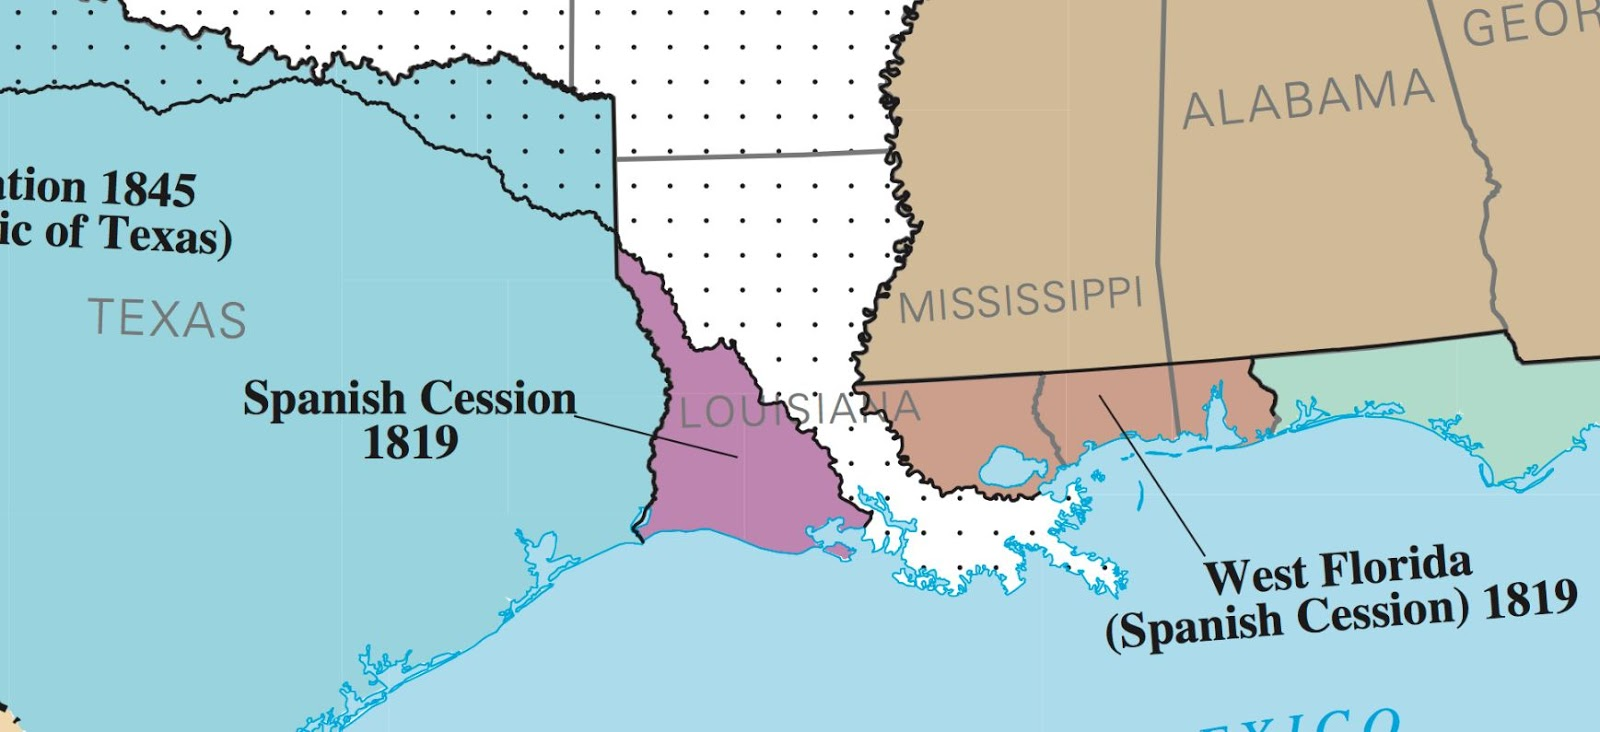 clearly one would ponder why the purchase s south western border ran so far easterly into the state interior near the gulf of mexico here s another